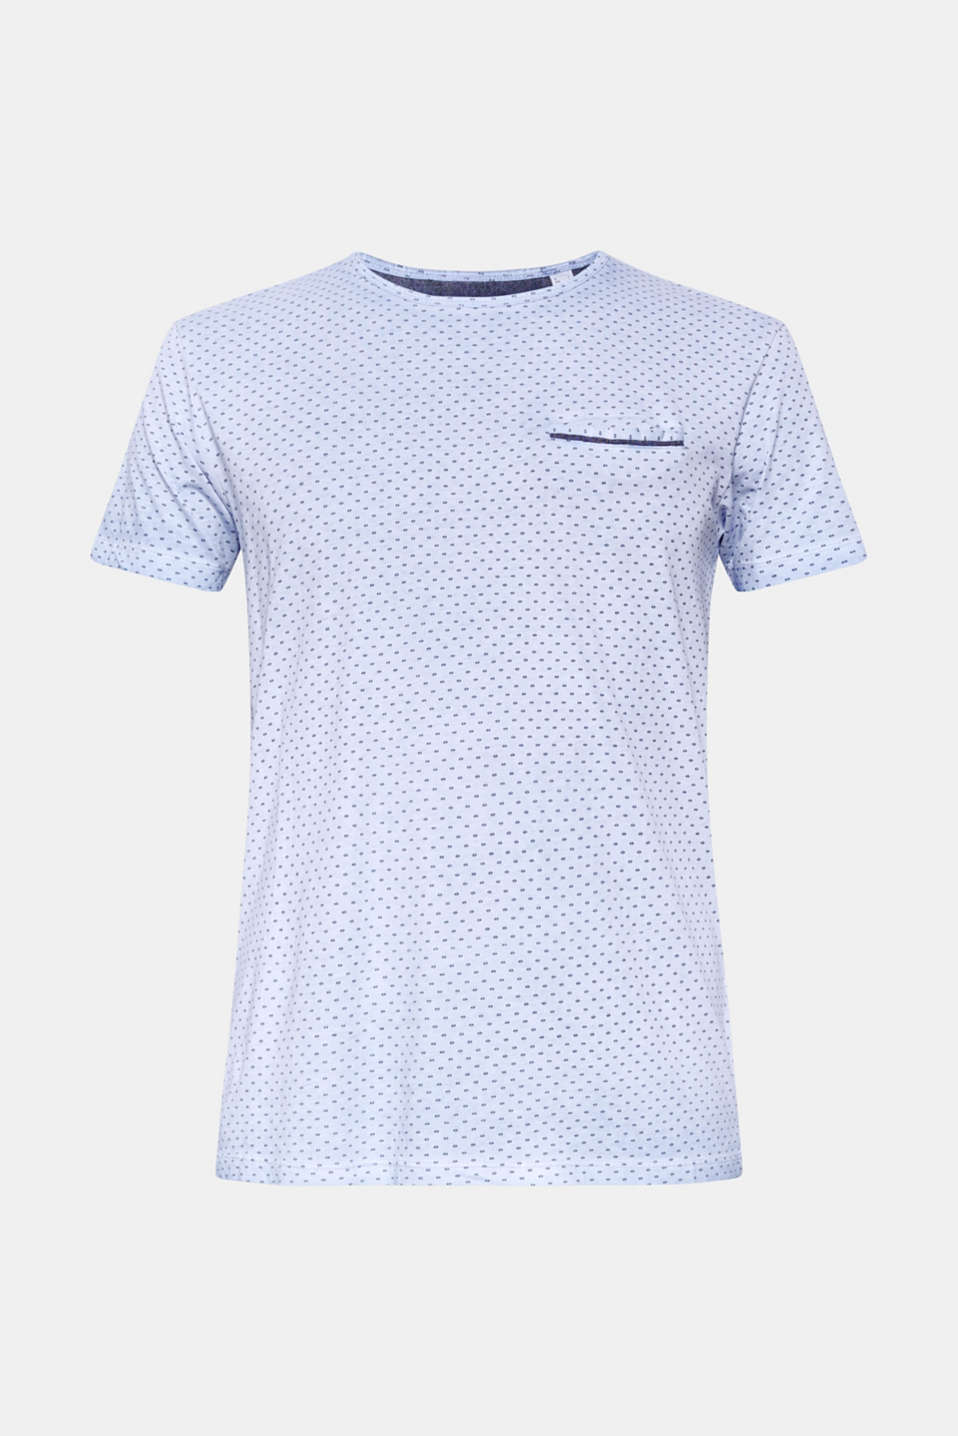 Jersey T-shirt with a micro print, 100% cotton, BLUE, detail image number 6